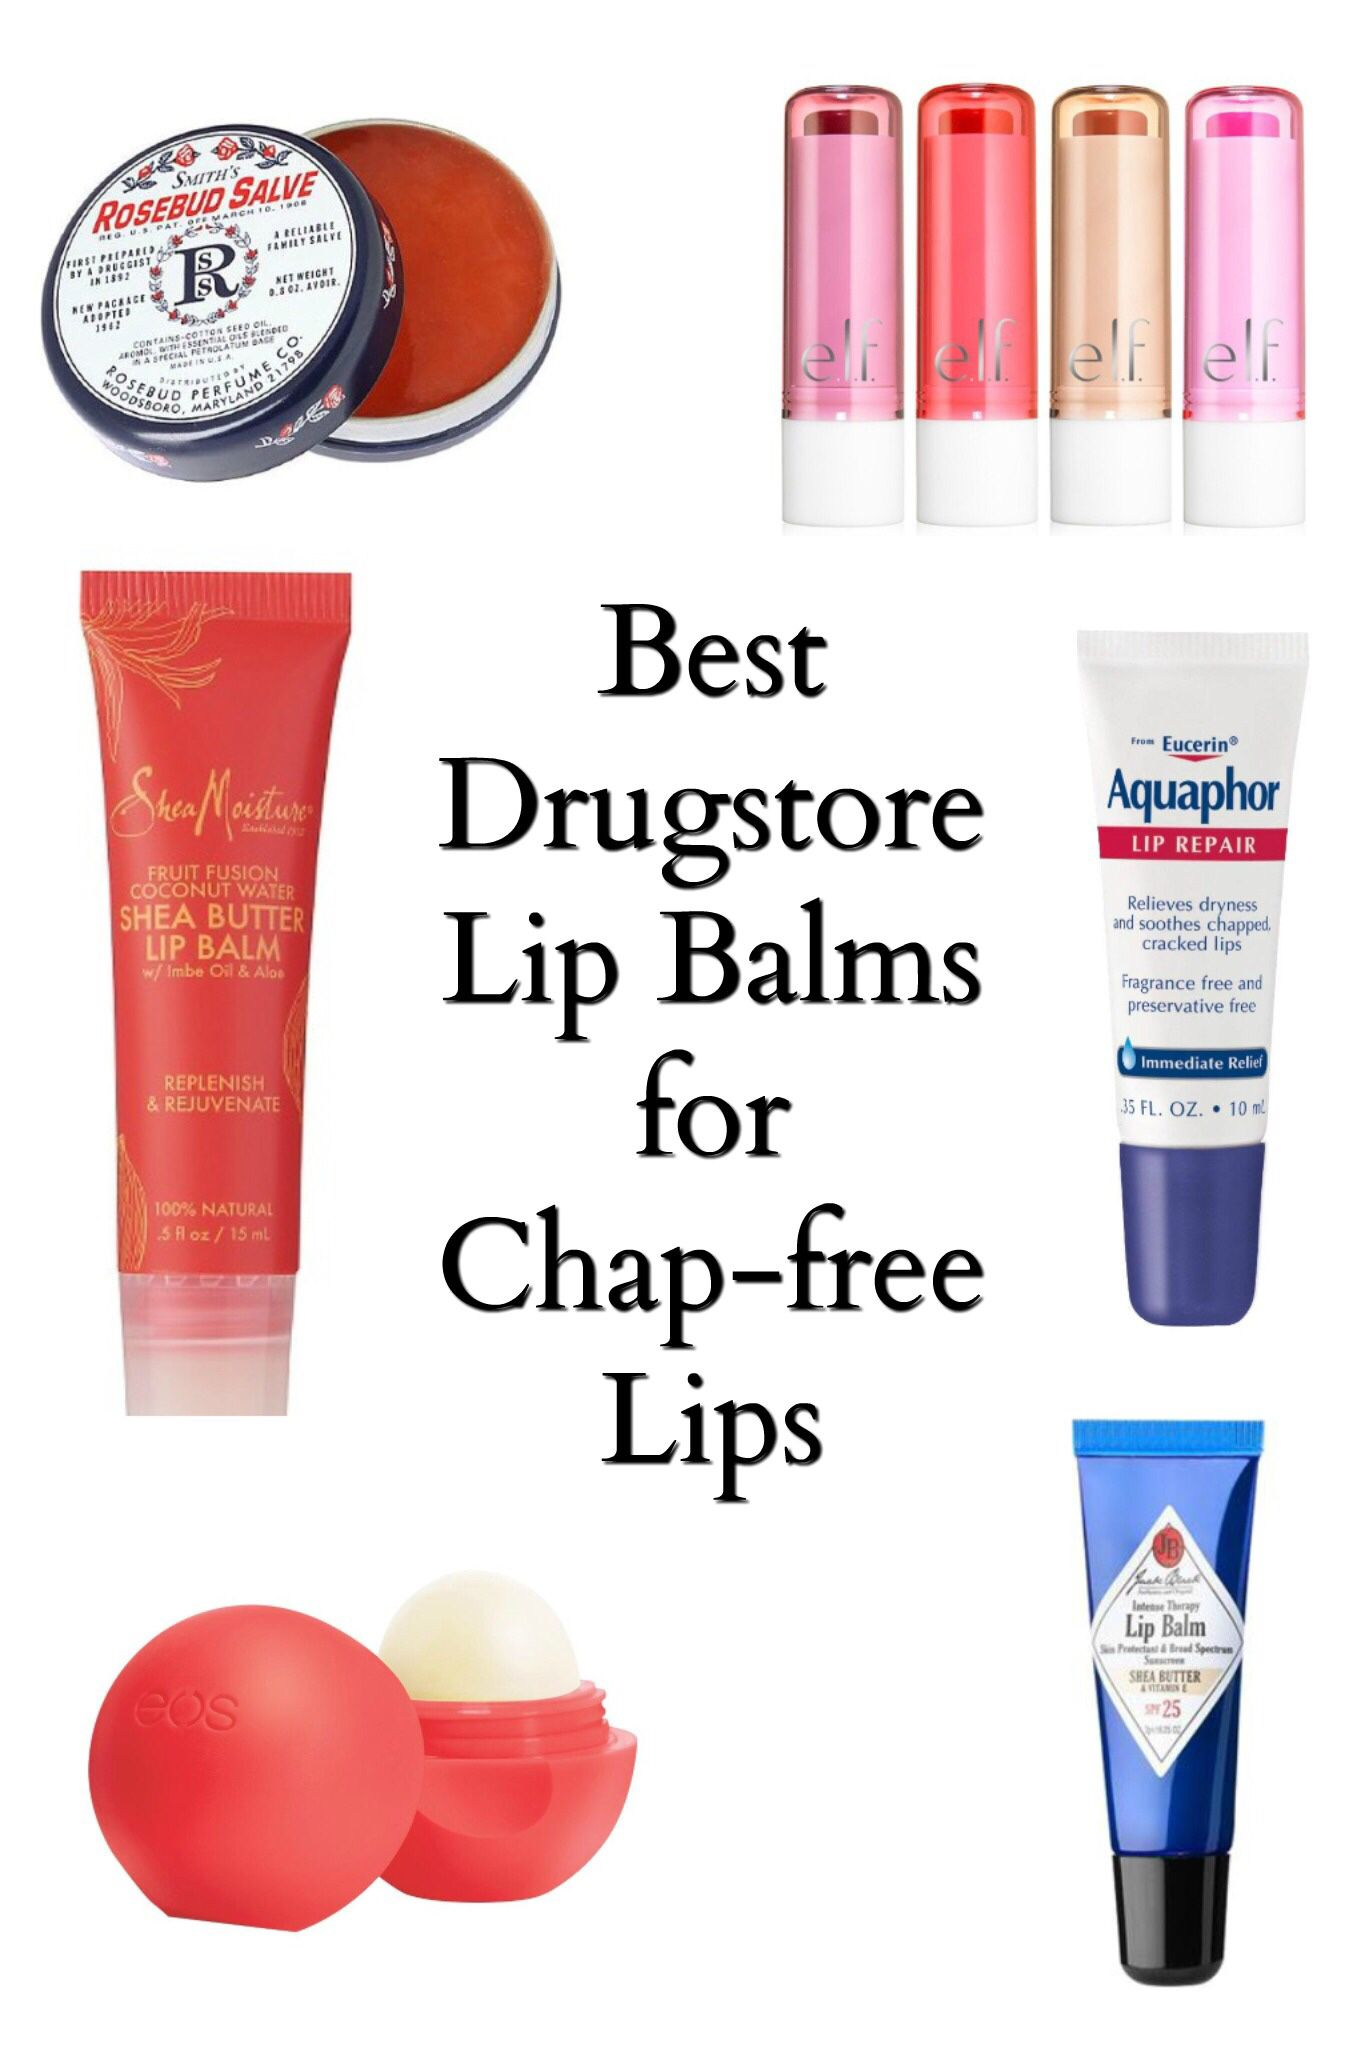 The Best Drugstore Lip Balms That Keep Your Lips Chap Free With